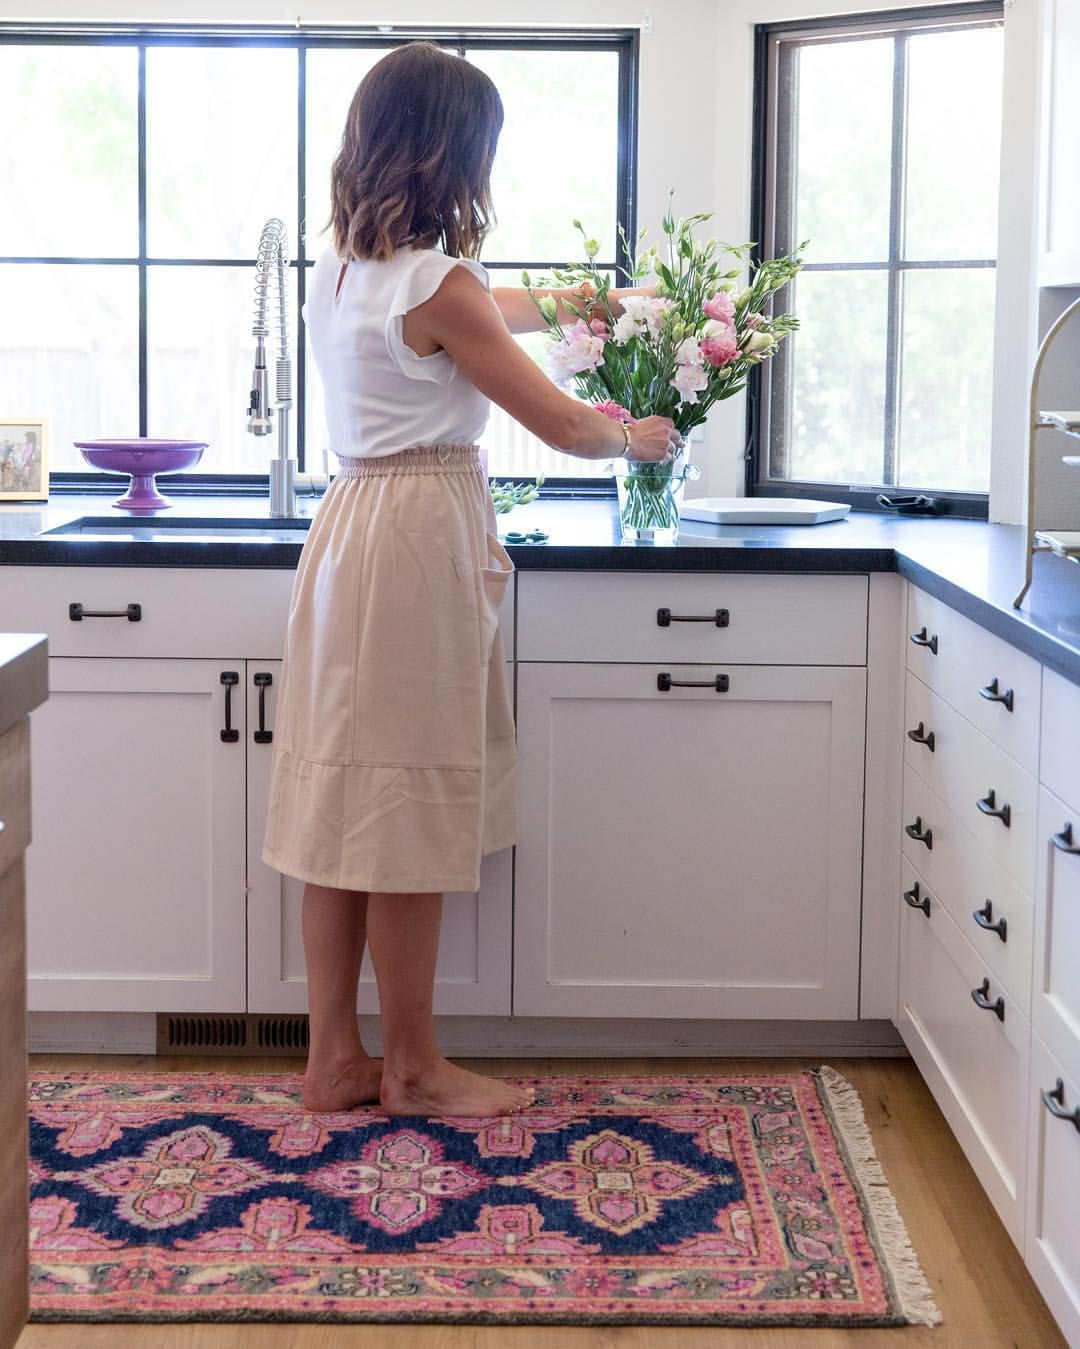 25  Stunning Picture for Choosing the Perfect Kitchen Rugs   Vintage     23 Best Kitchen Rugs   Stylish Kitchens With Rugs   kitchen rugs ideas   KitchenRugs  Kitchen